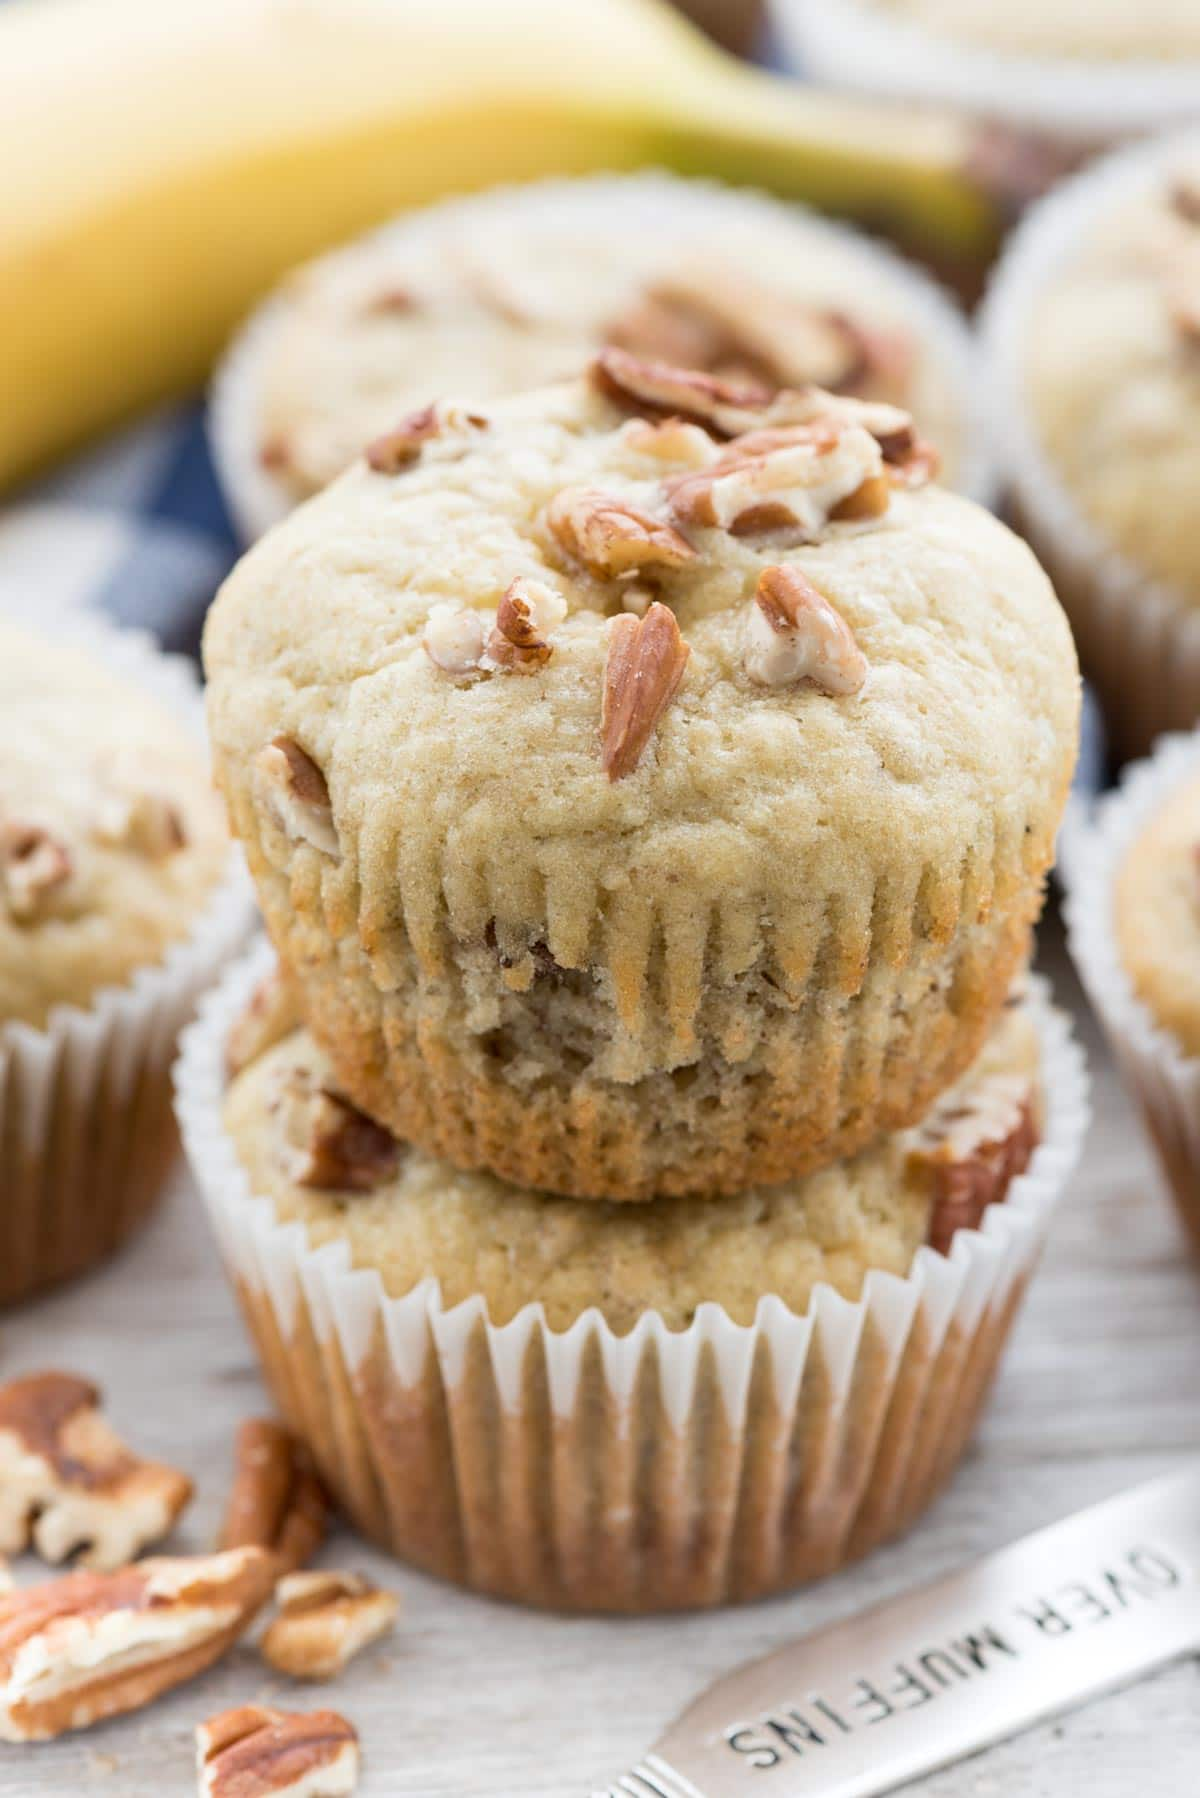 Cream Cheese Banana Muffins - this EASY banana muffin recipe is my favorite and it's FULL of a sweet cream cheese mixture! Everyone loves these muffins!